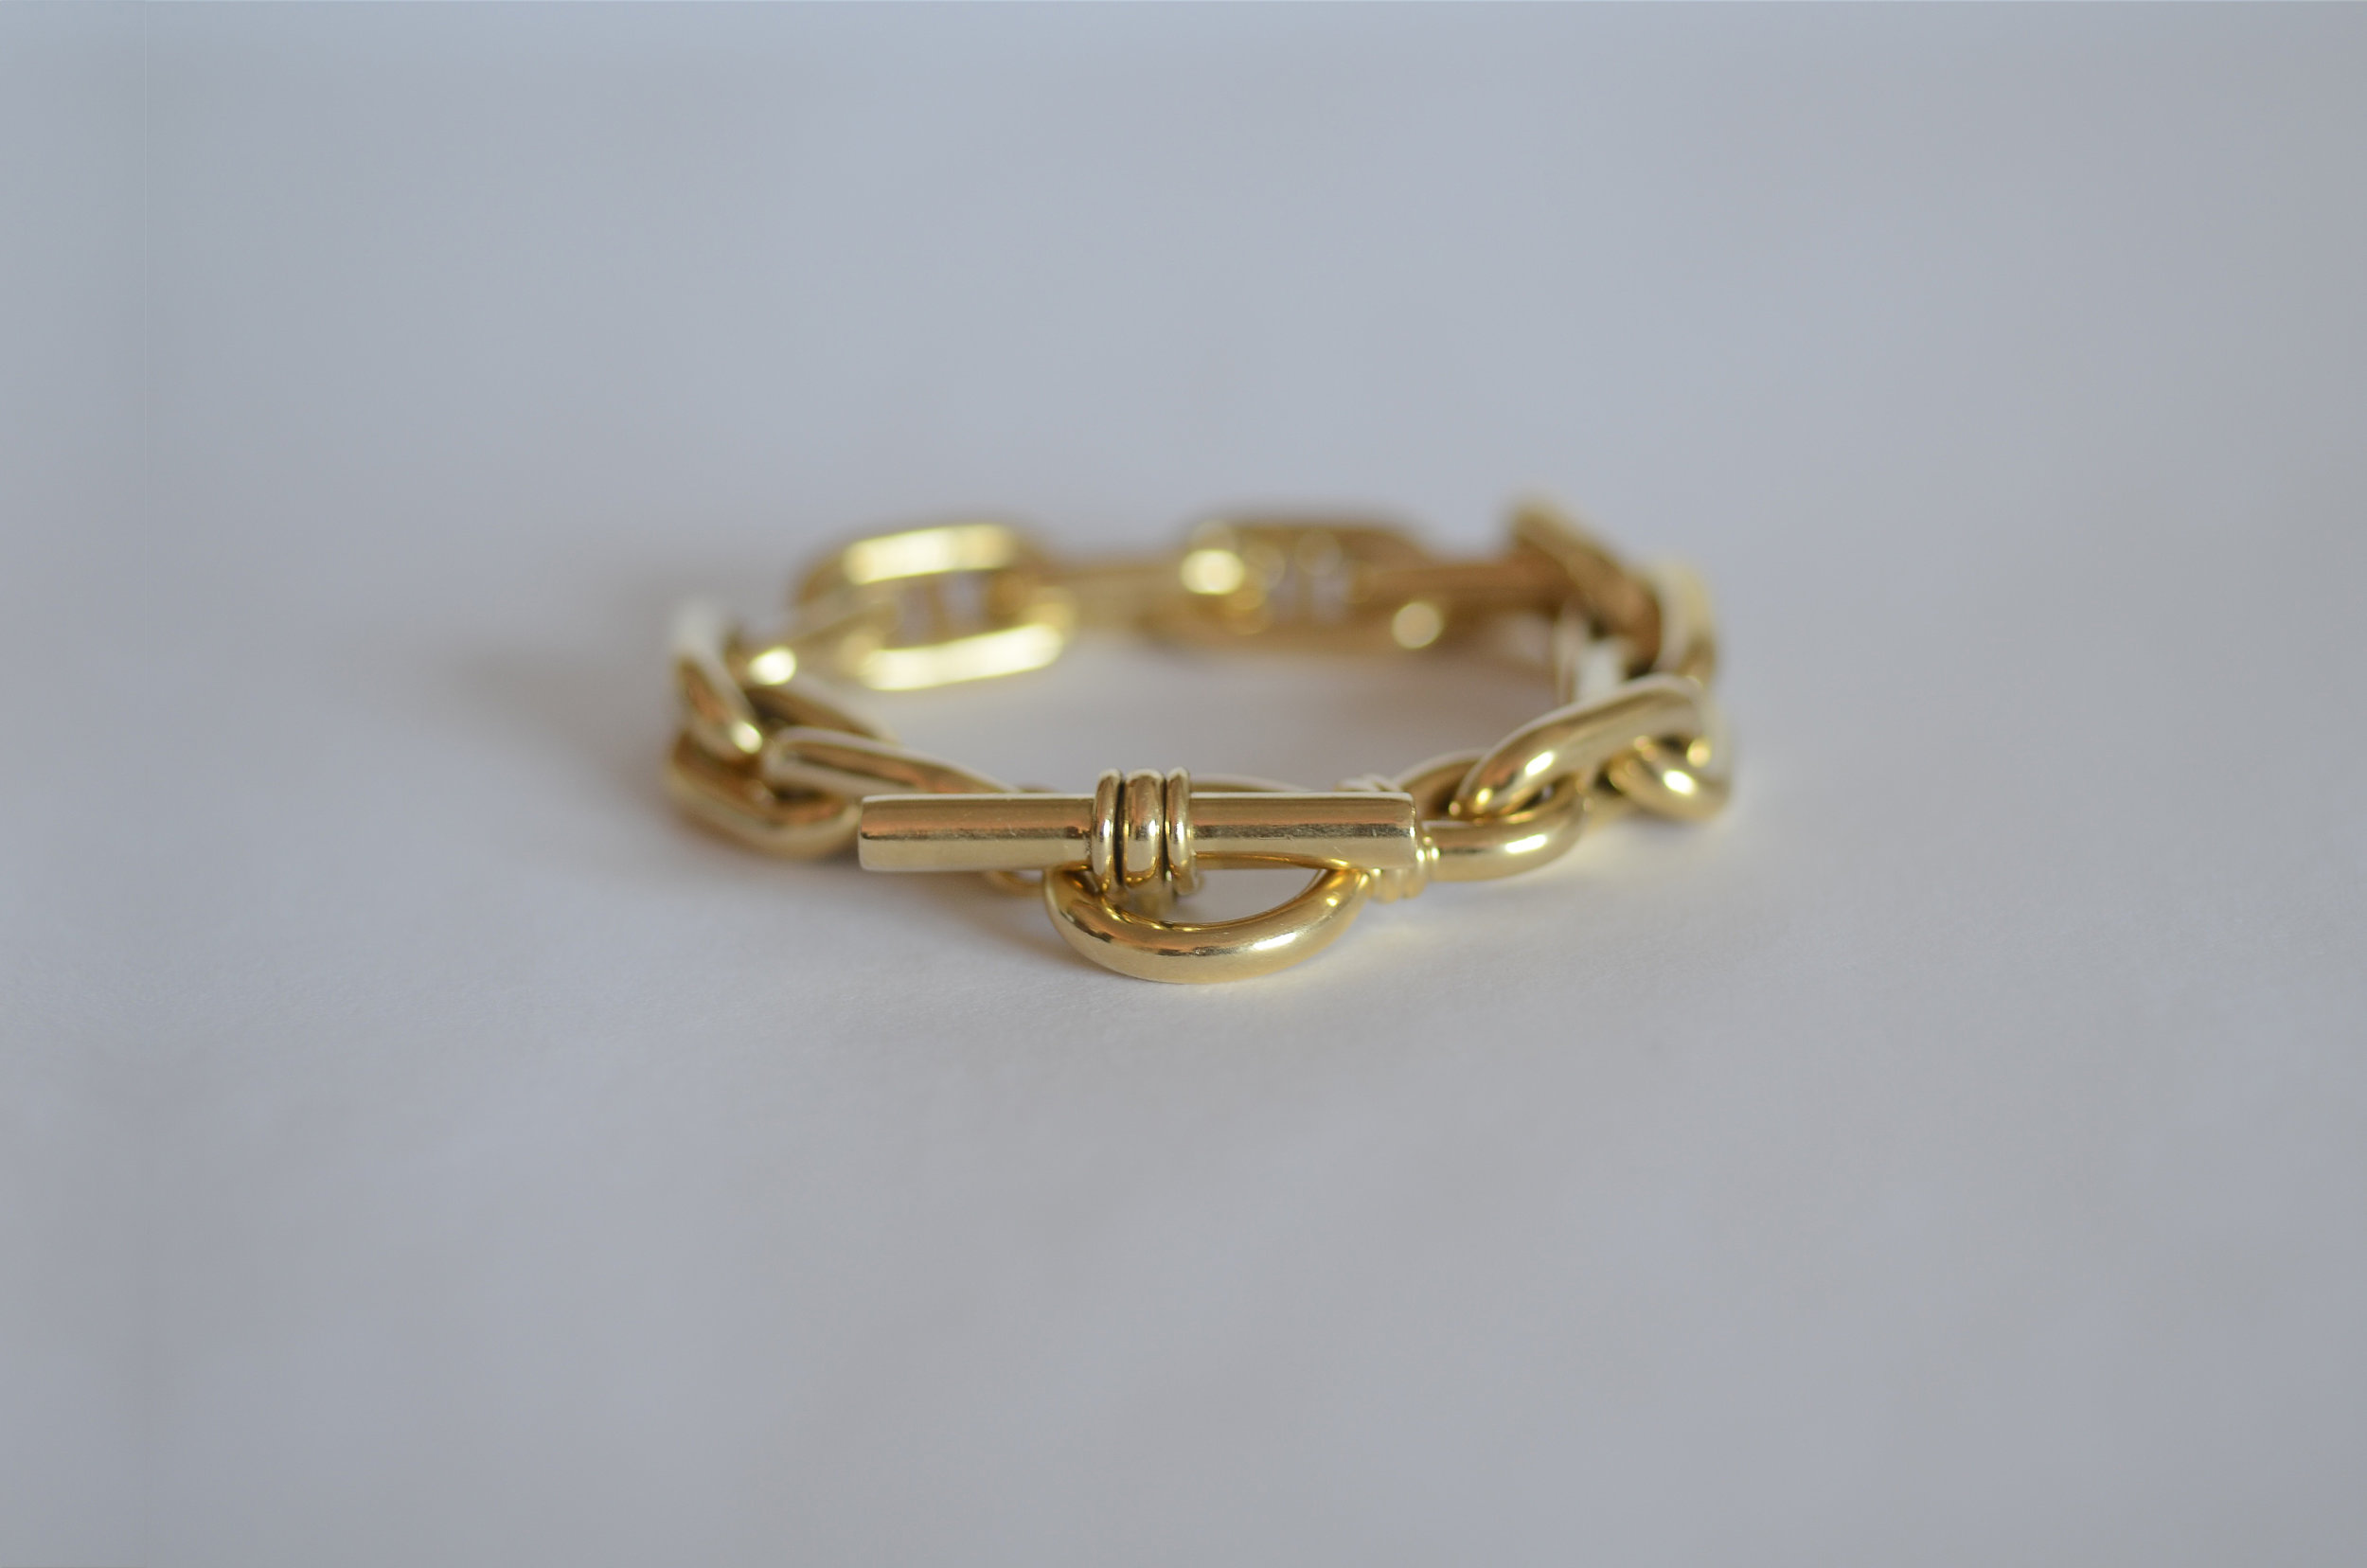 Italian 18kt Yellow Gold Link Bracelet with Toggle Clasp